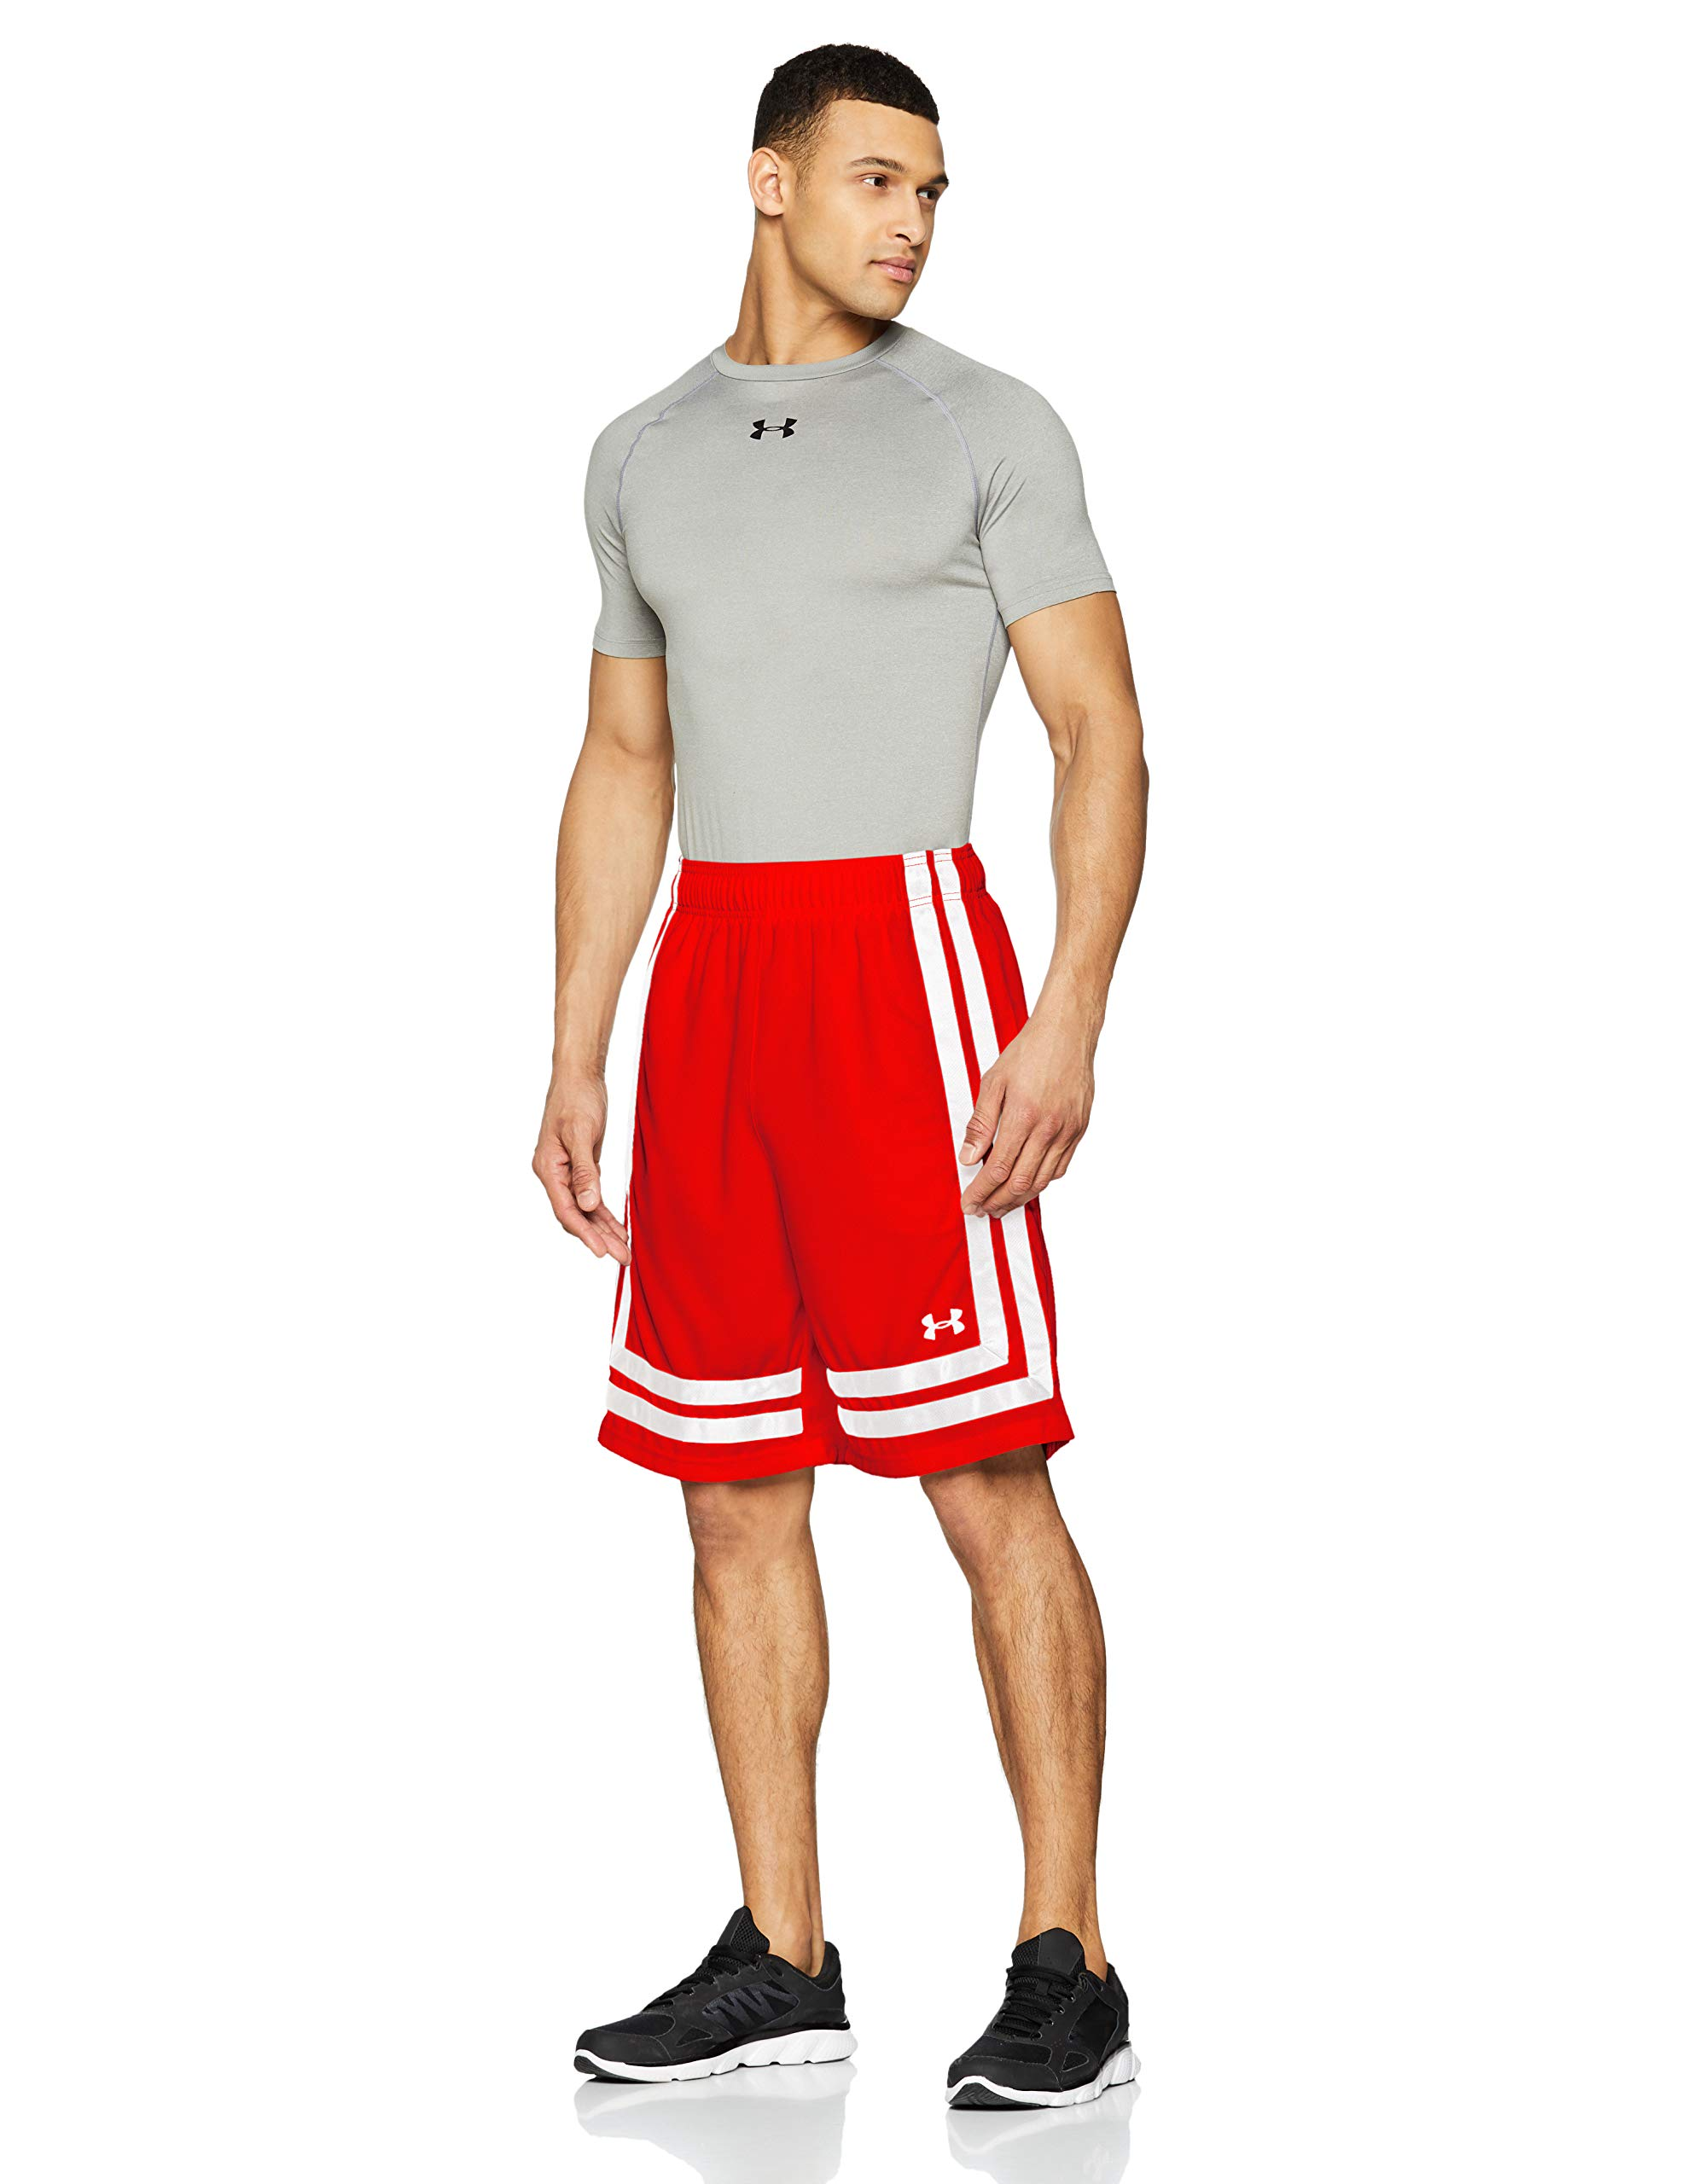 Under Armour Men's Baseline 10'' Shorts, Red (600)/White, Large by Under Armour